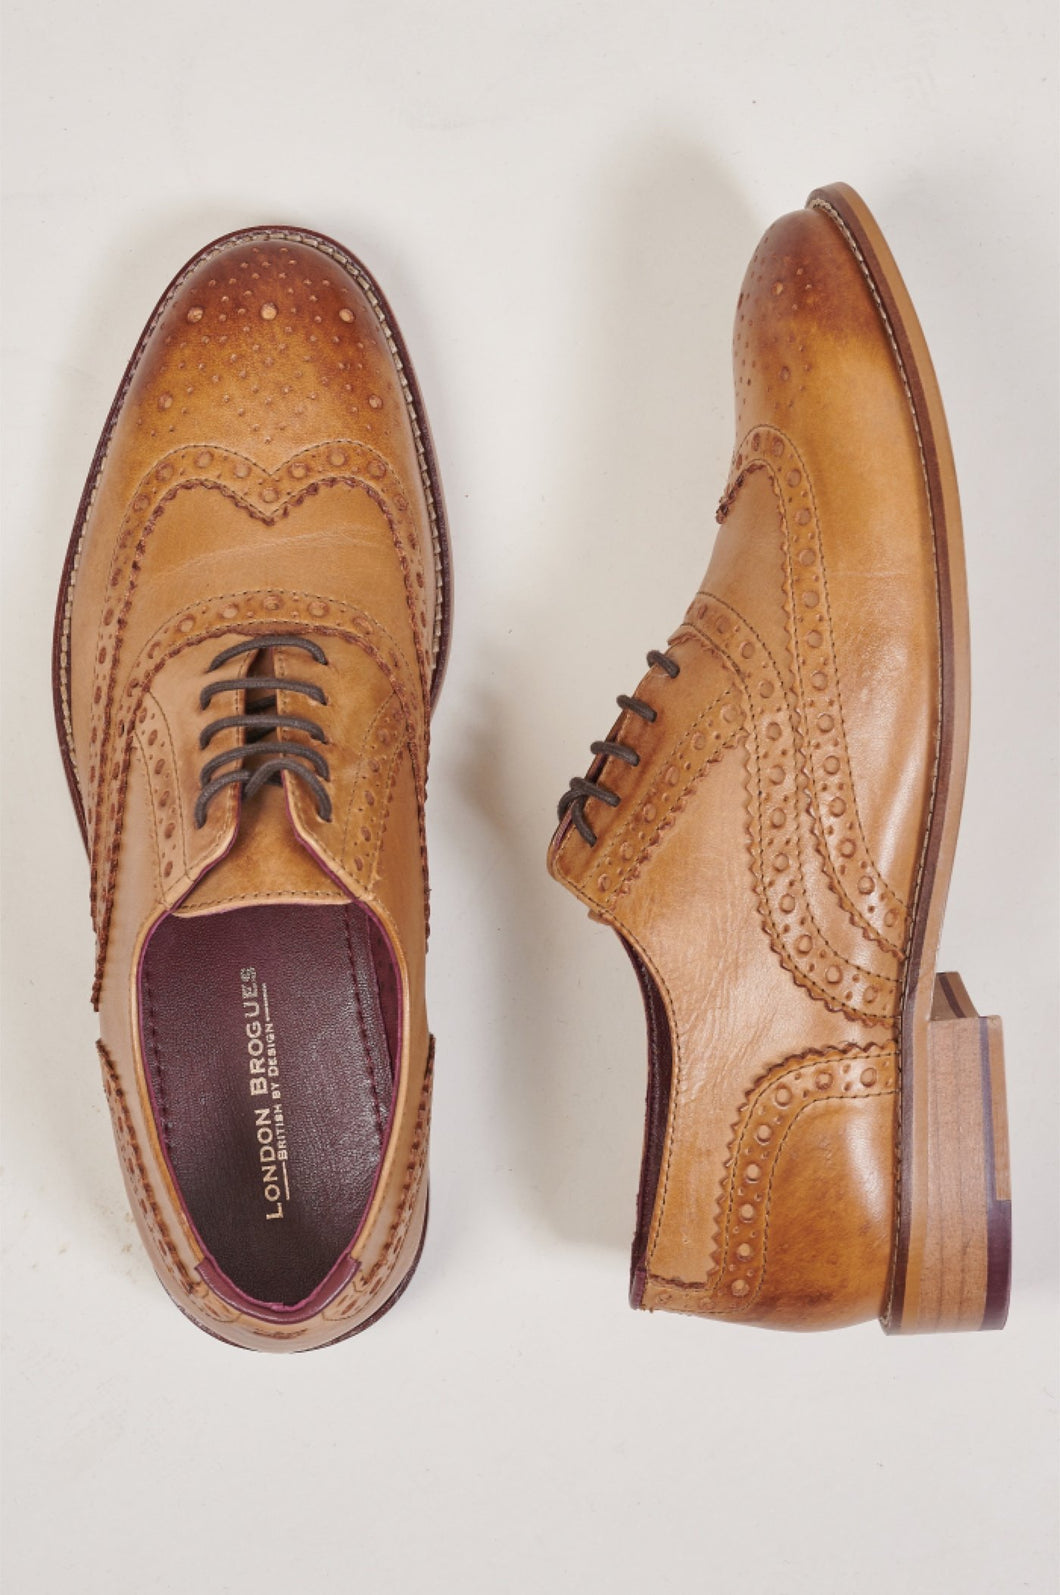 London Brogues Gatsby Tan Brogue Shoe